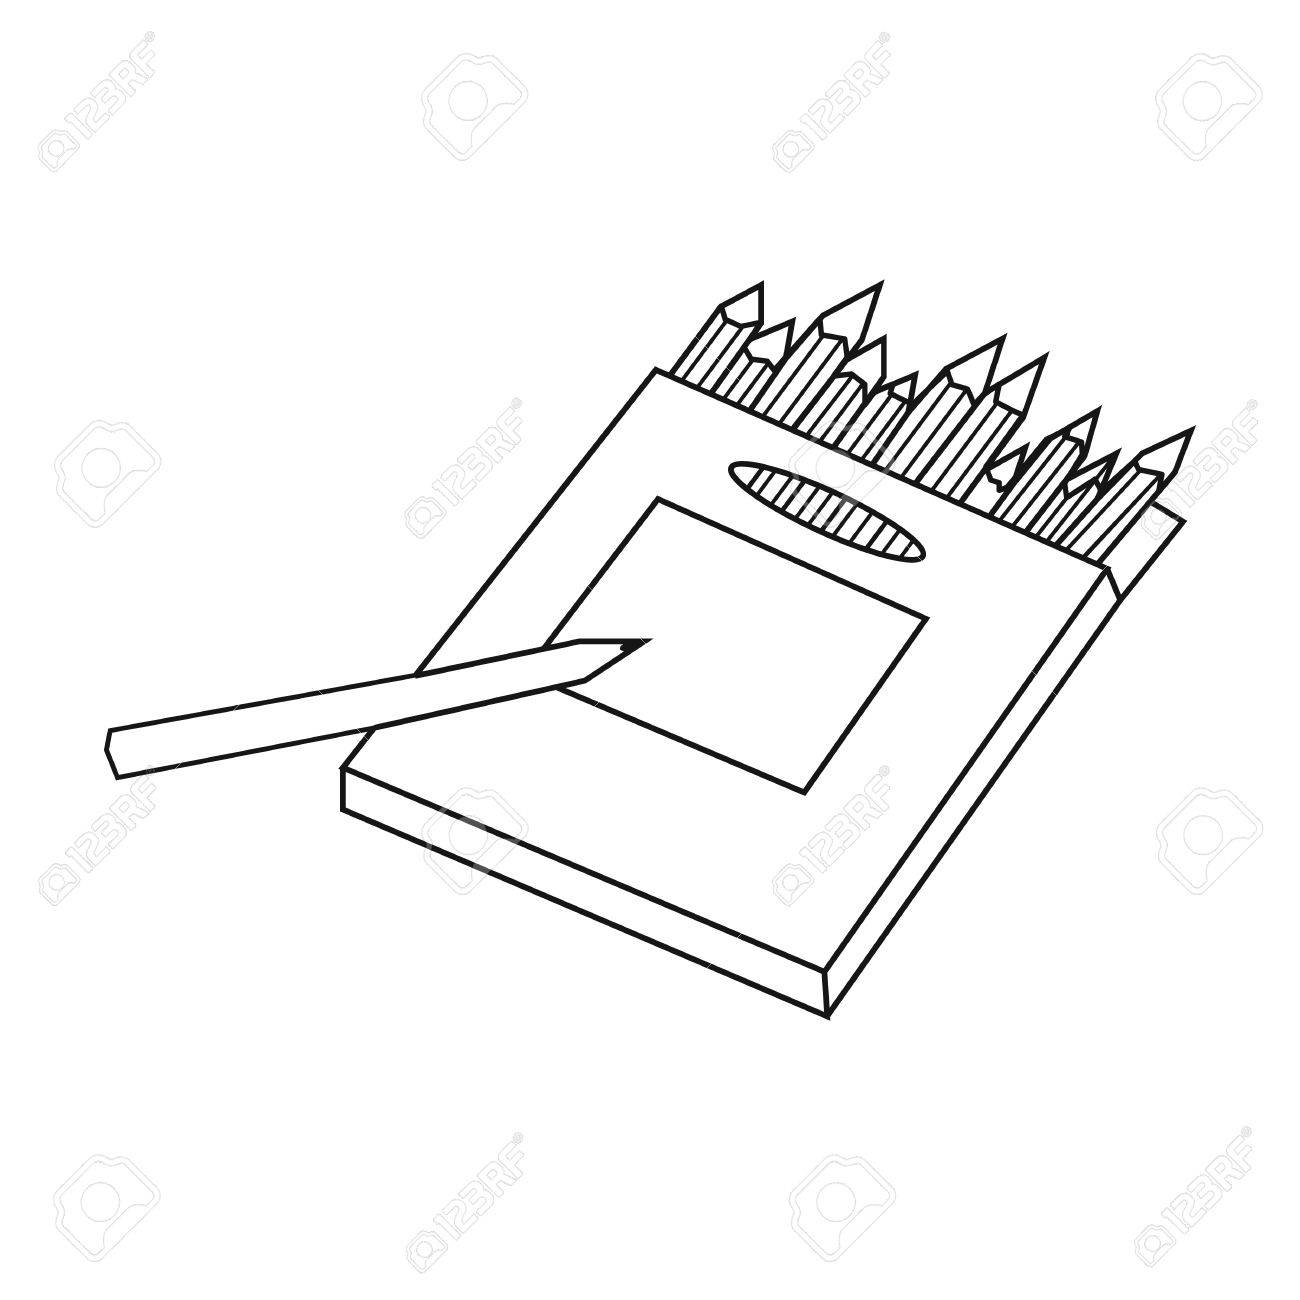 hight resolution of colored pencils for drawing in box icon in outline style isolated on white background artist